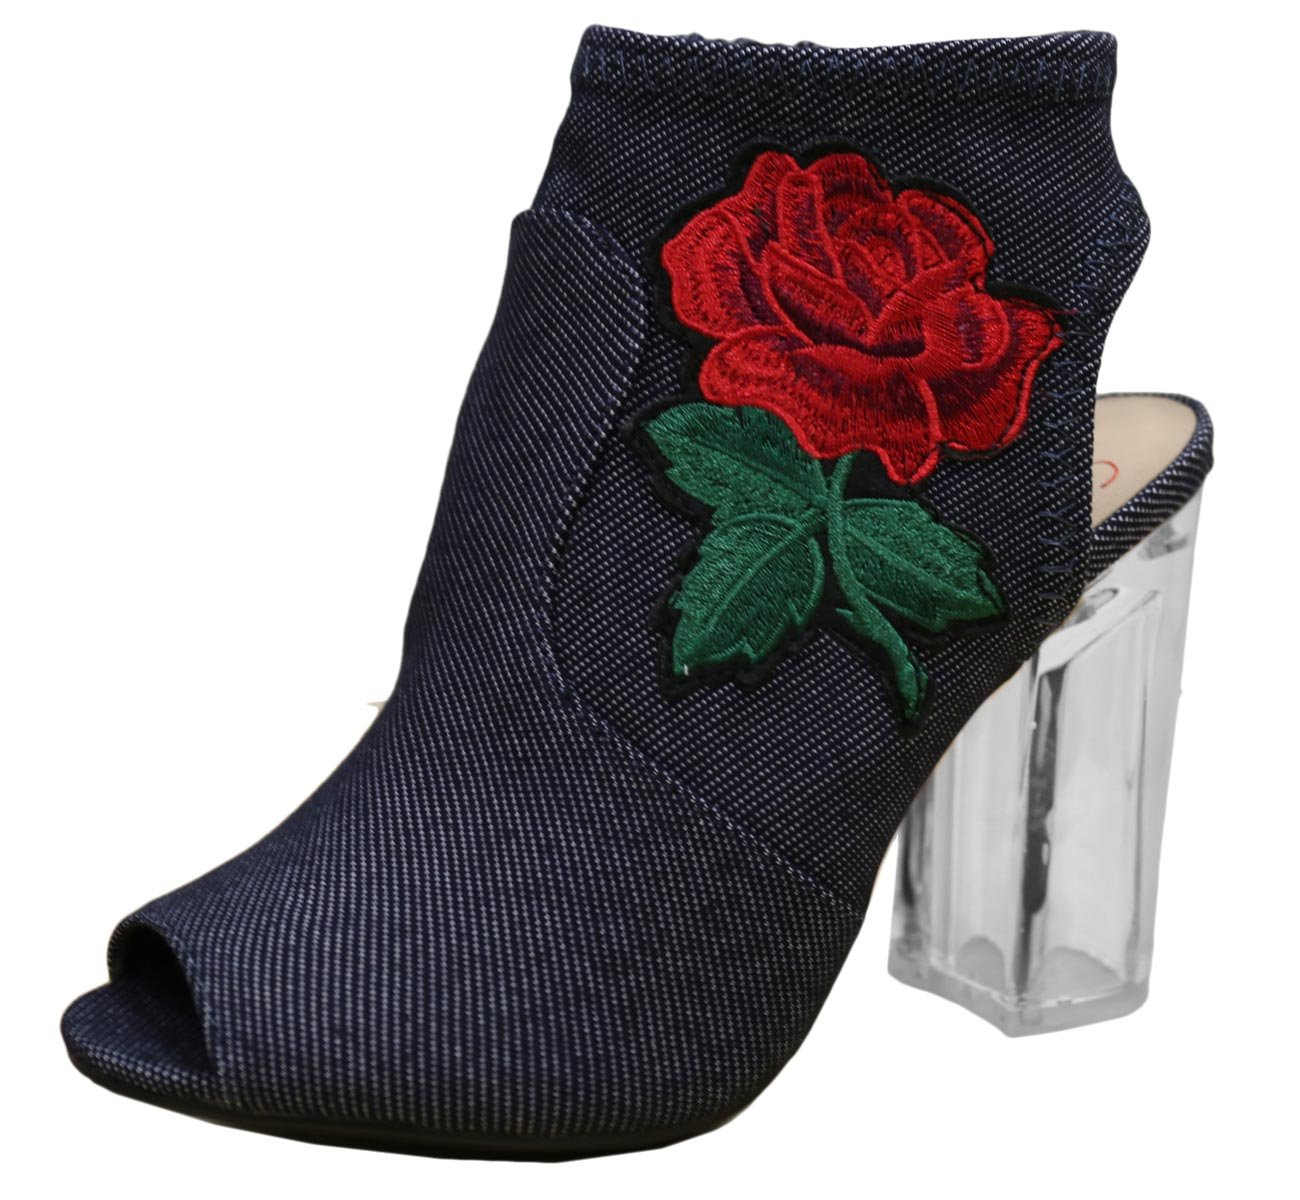 Delicious Women's Embroidered Rose Floral Lucite Clear Heel Peep Toe Bootie B06XH4LV8X 8.5 B(M) US|Blue Denim